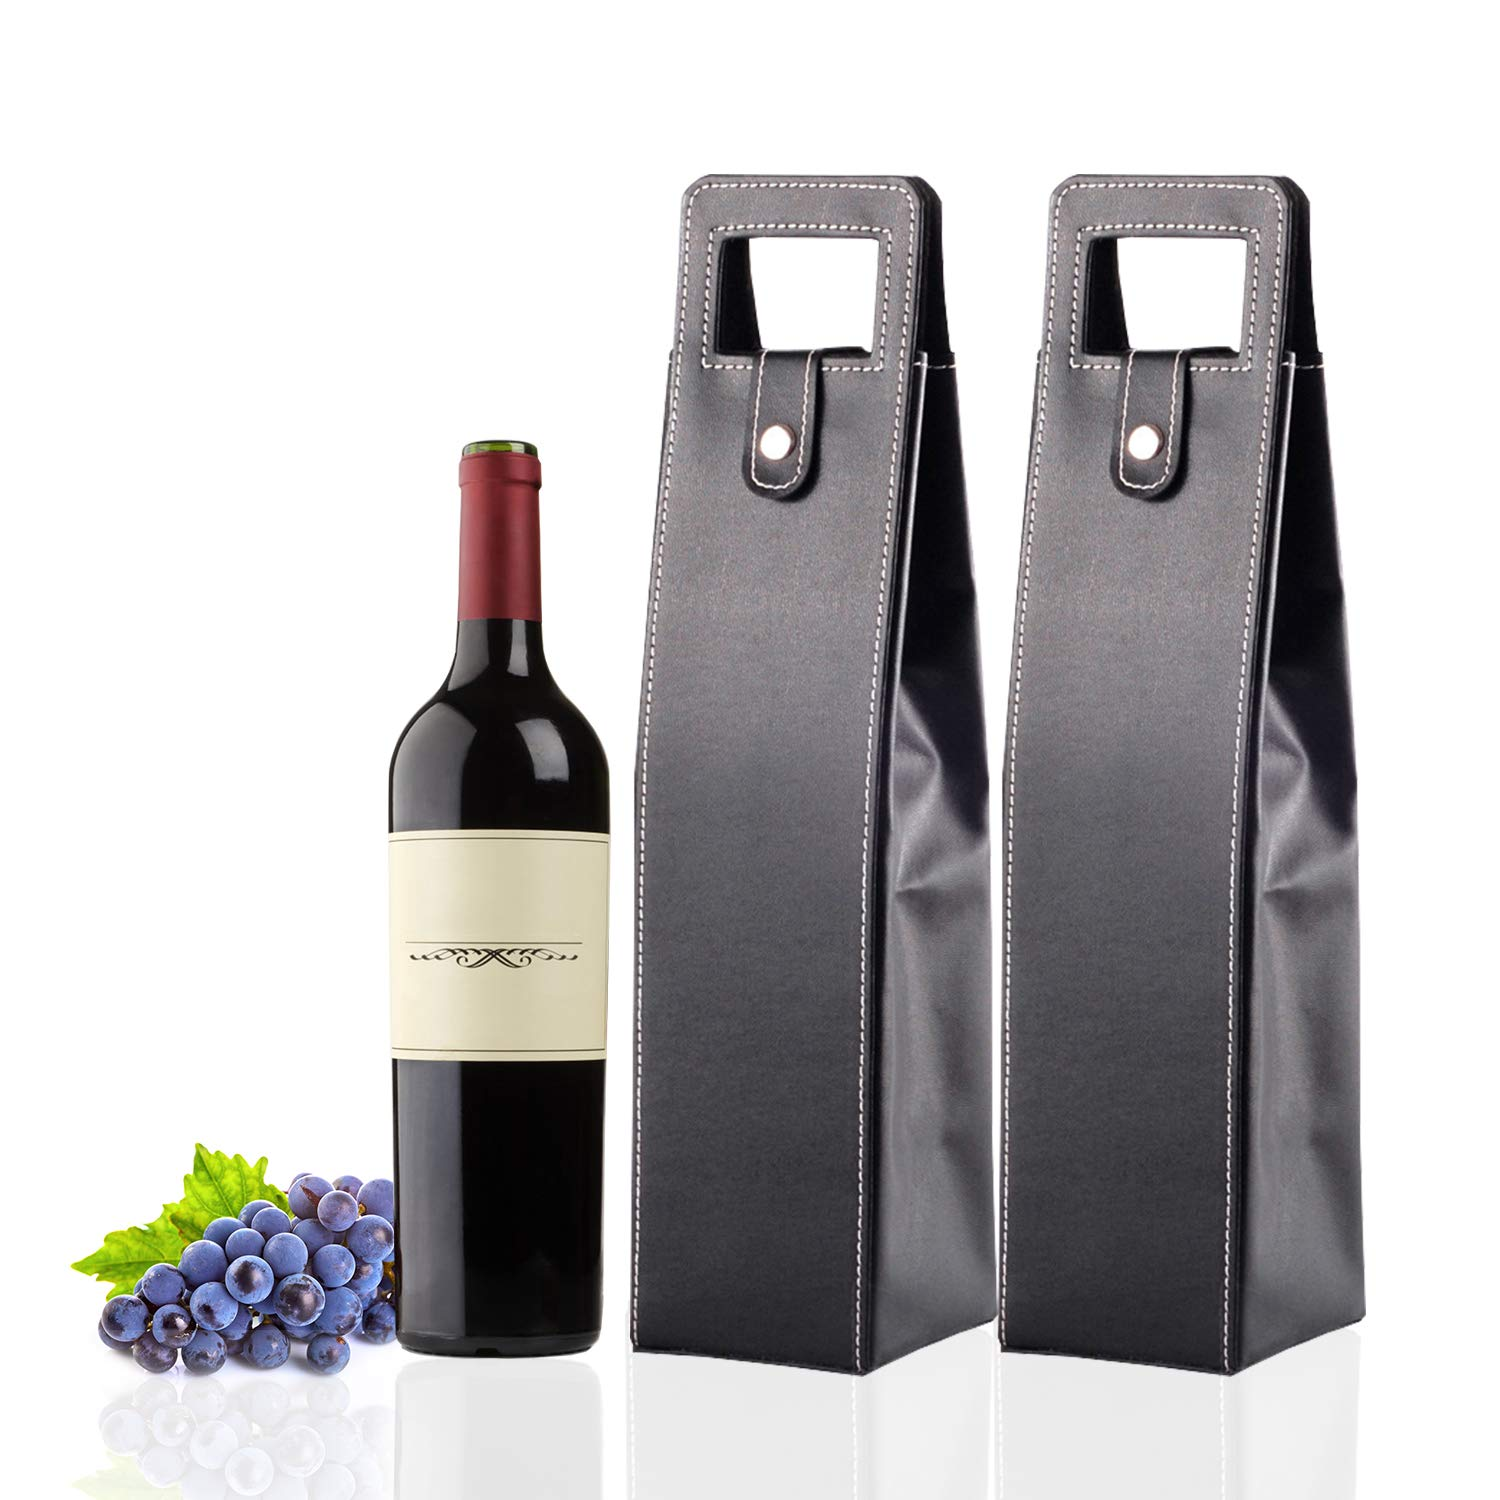 CODOHI Resuable Leather Wine Tote Bag(2 Packs)- Wine/Champagne/Beer Gift Bags Carrier for Valentines Day Holiday-Black